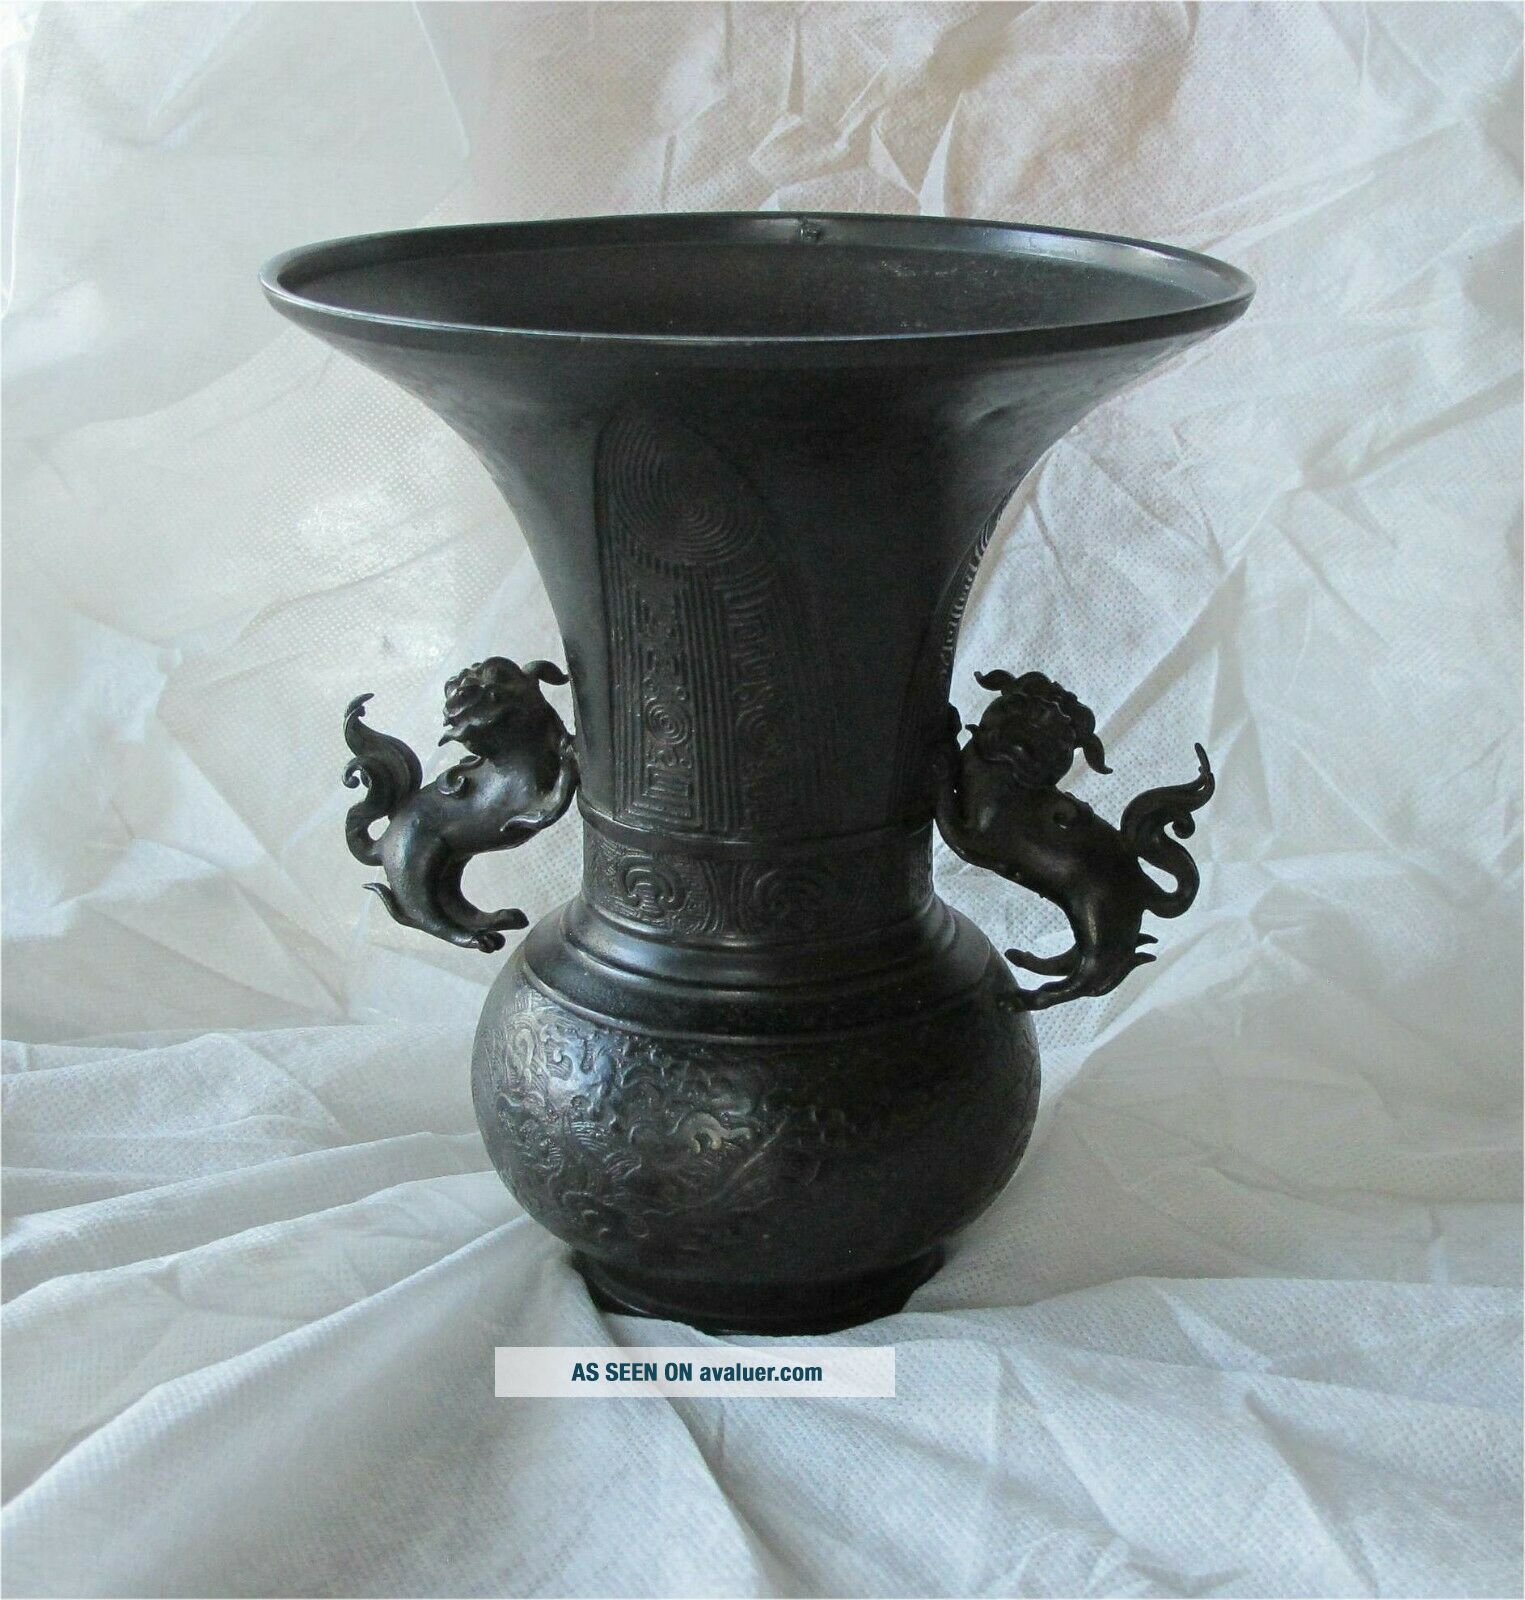 Antique Chinese Bronze Vase Ming Dynasty Foo Lions Archaic Decorations Bonhams